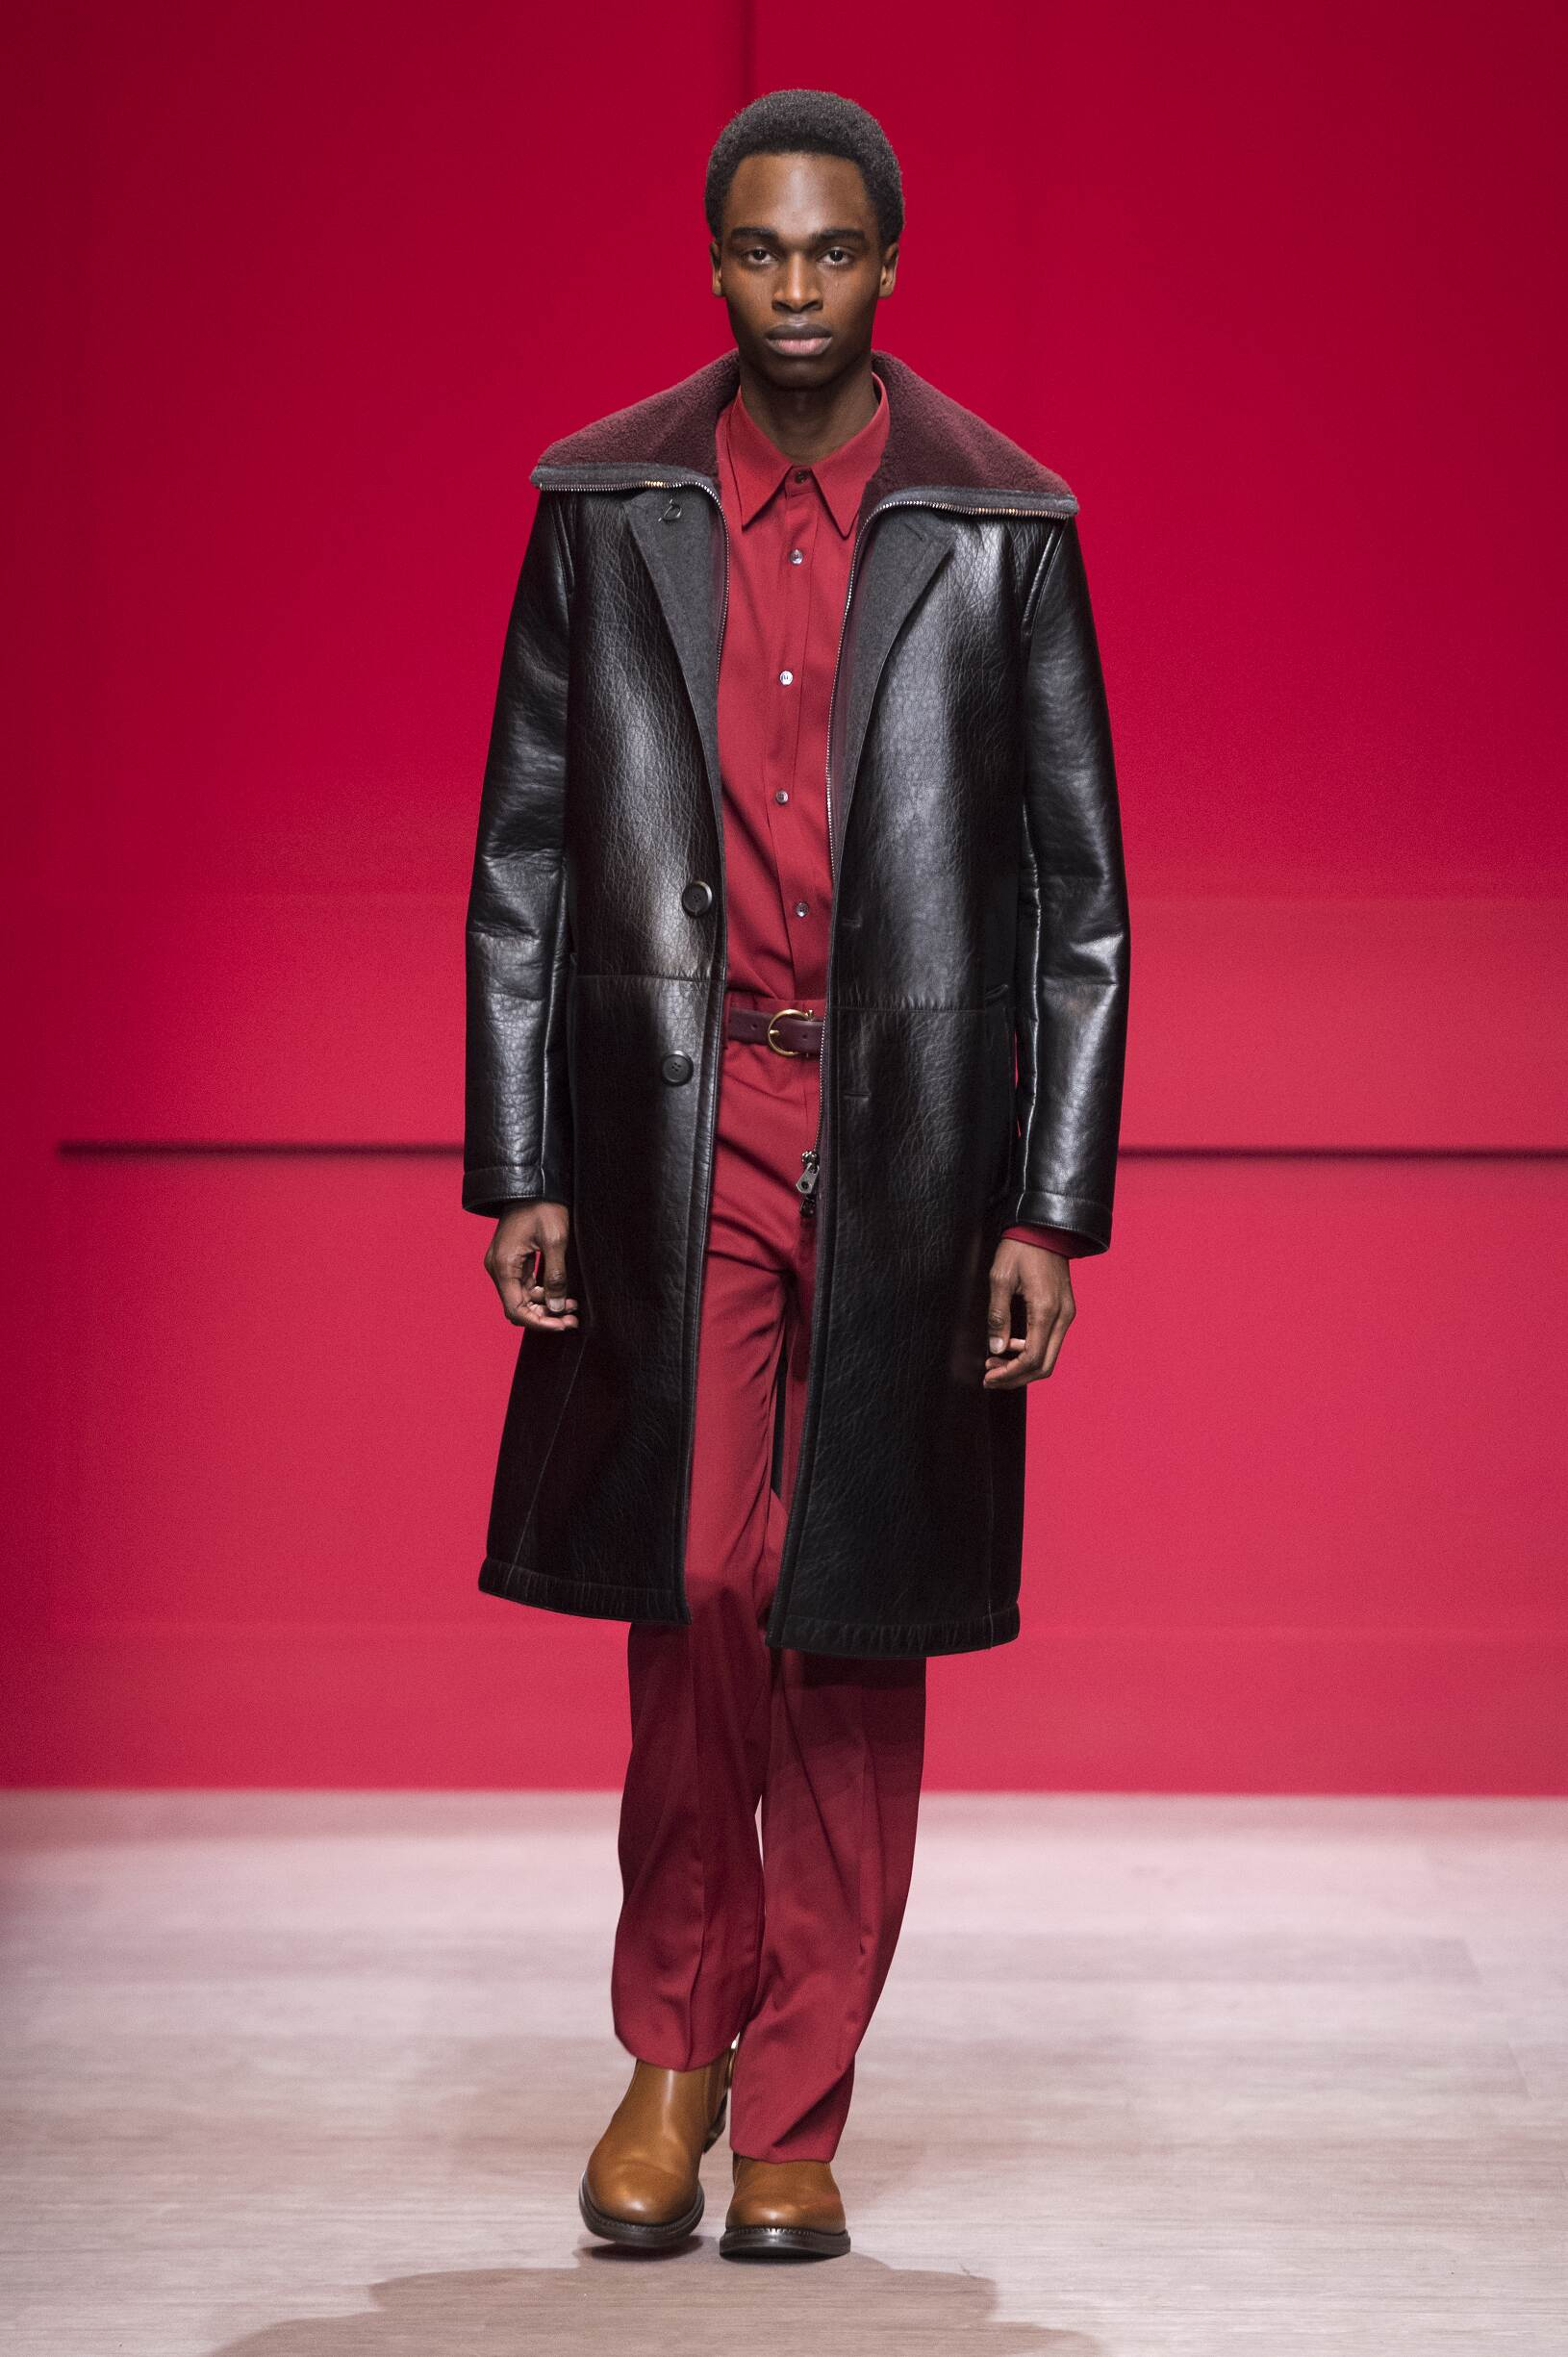 Menswear Runway Fashion Show Salvatore Ferragamo